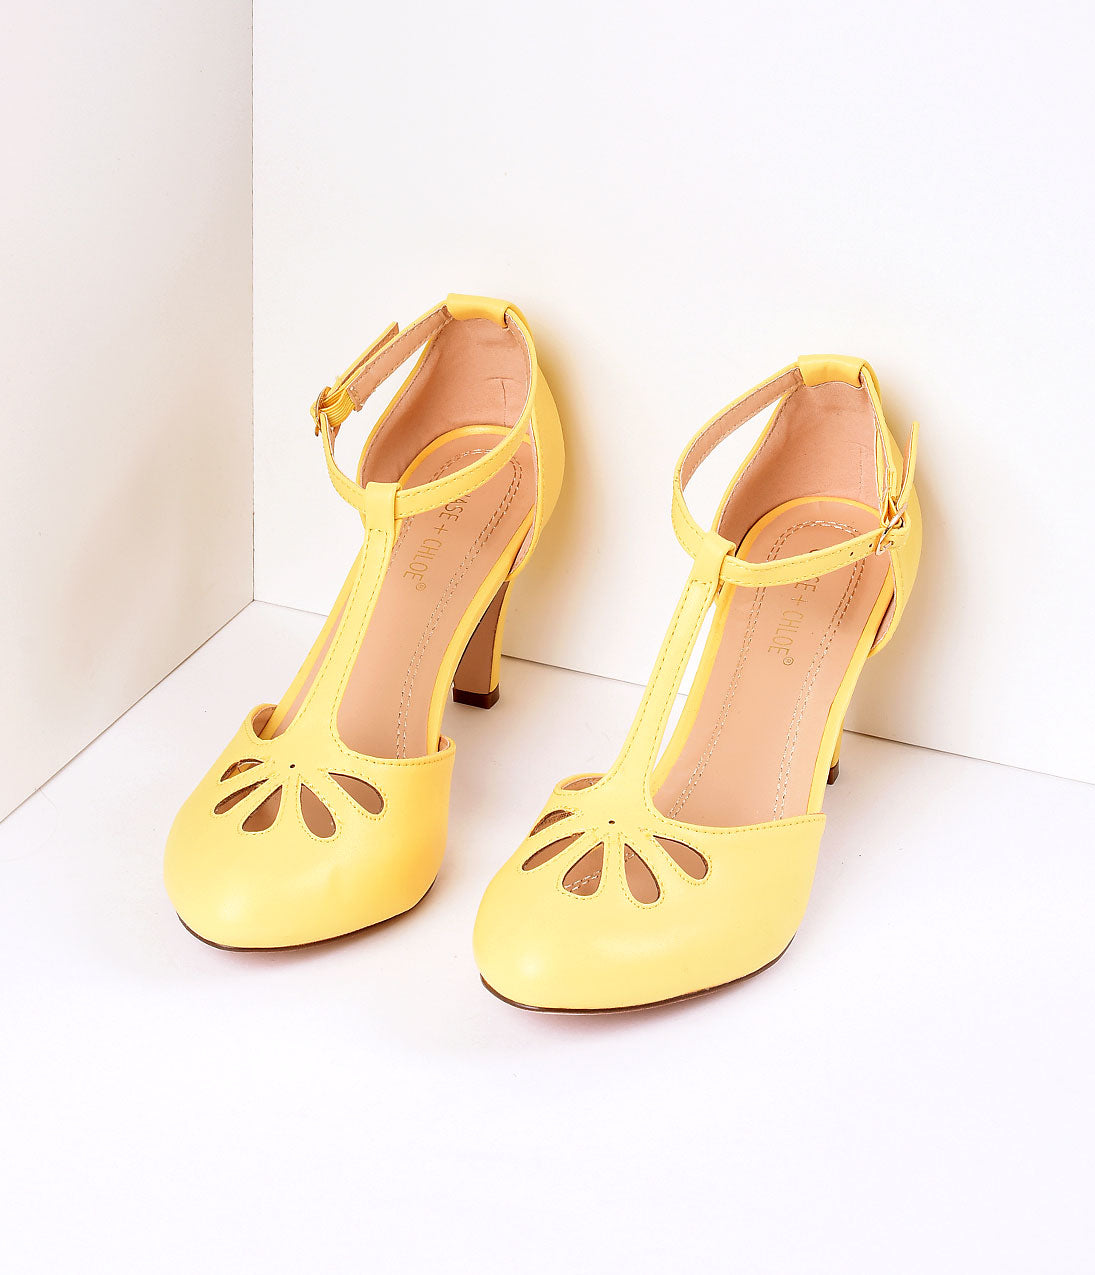 1950s Style Shoes Yellow Pleather Cutout Kimmy T-Strap Heels $44.00 AT vintagedancer.com